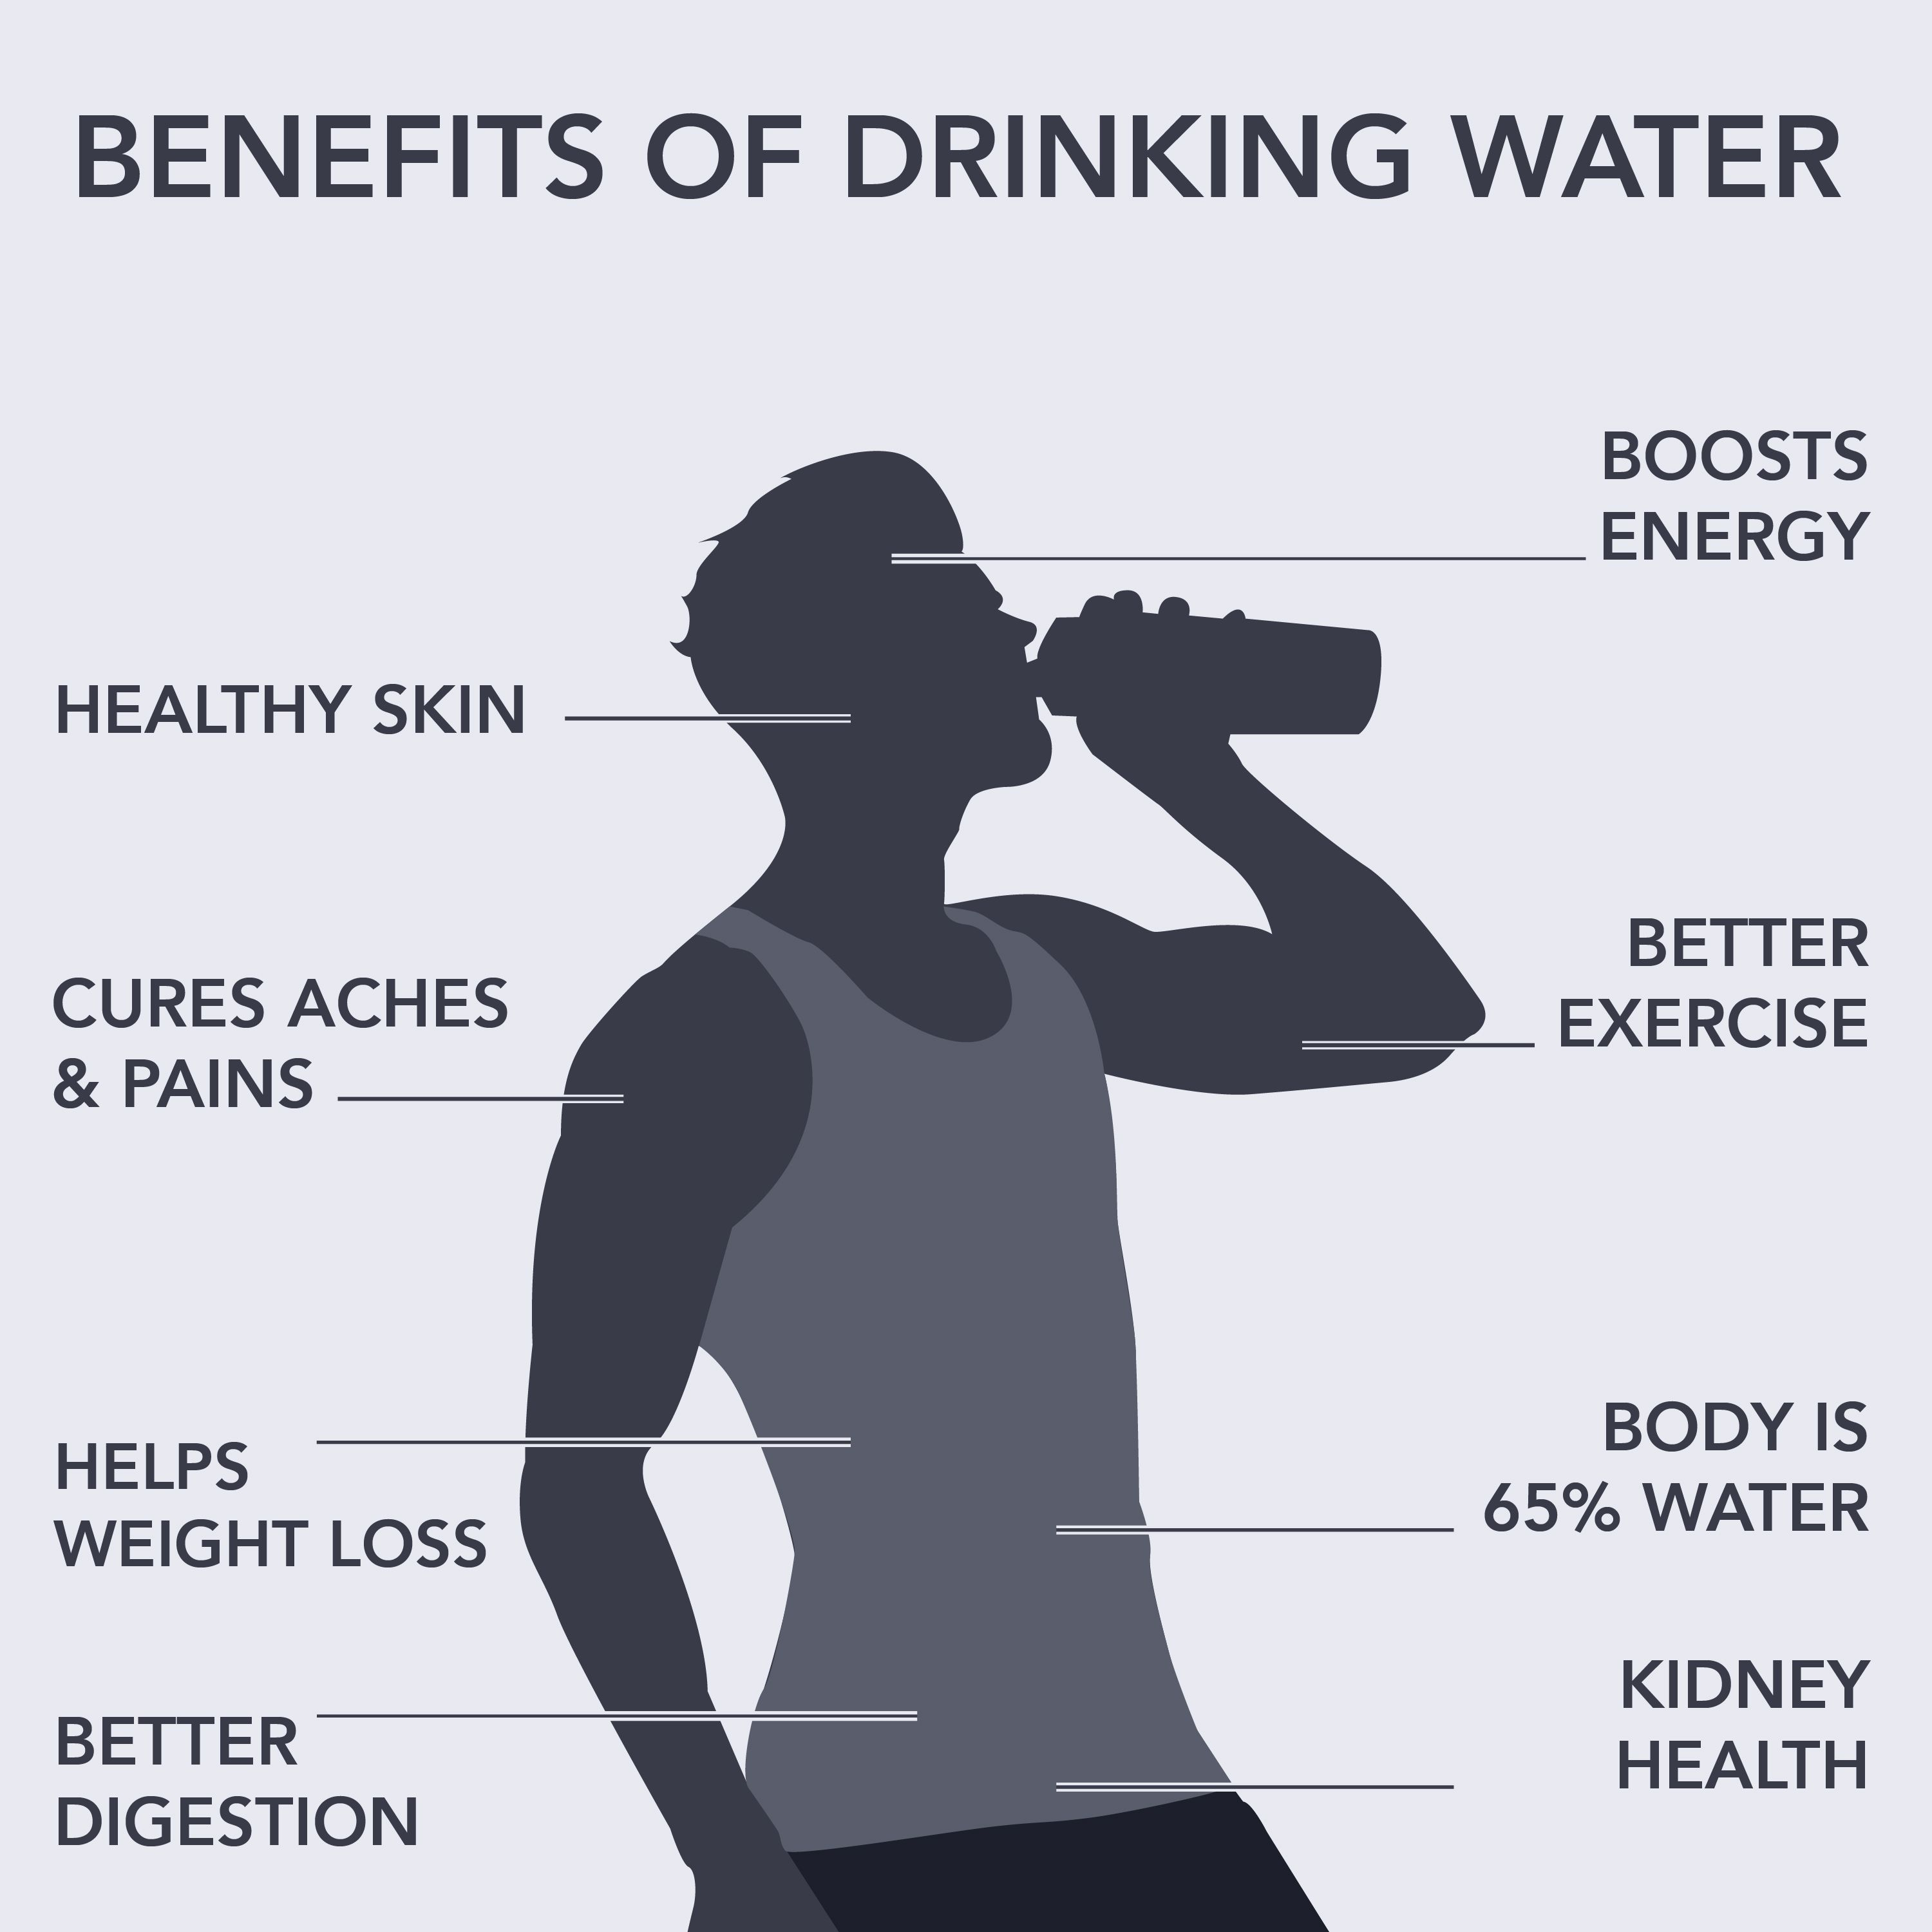 benefits of drinking water infographic crystal quest experience